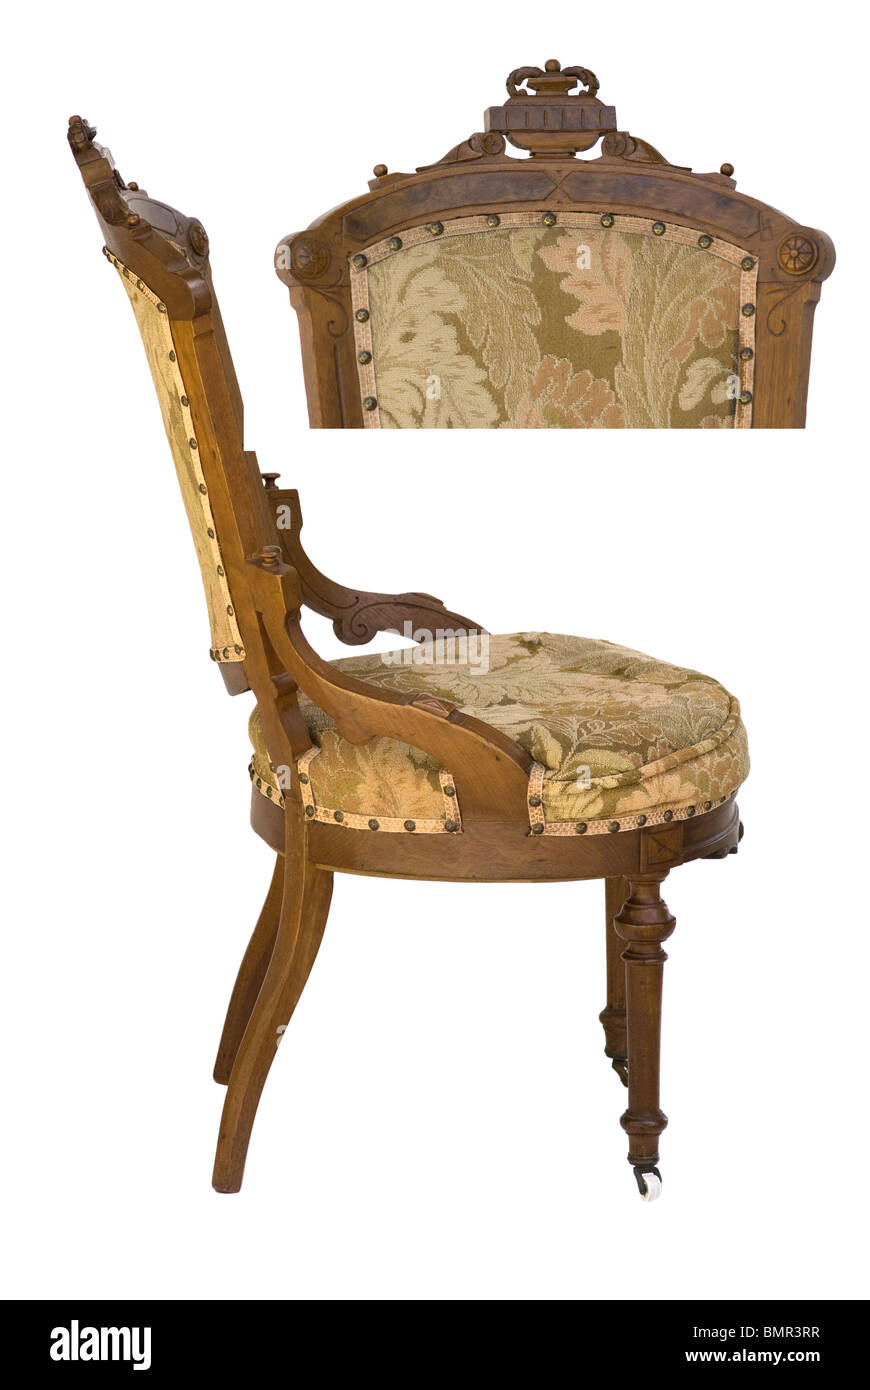 Eastlake Victorian period side & top view of antique upholstered wood carved  chair - Stock Photo - Eastlake Victorian Antique Wood Carved Upholstered Chair From A Side